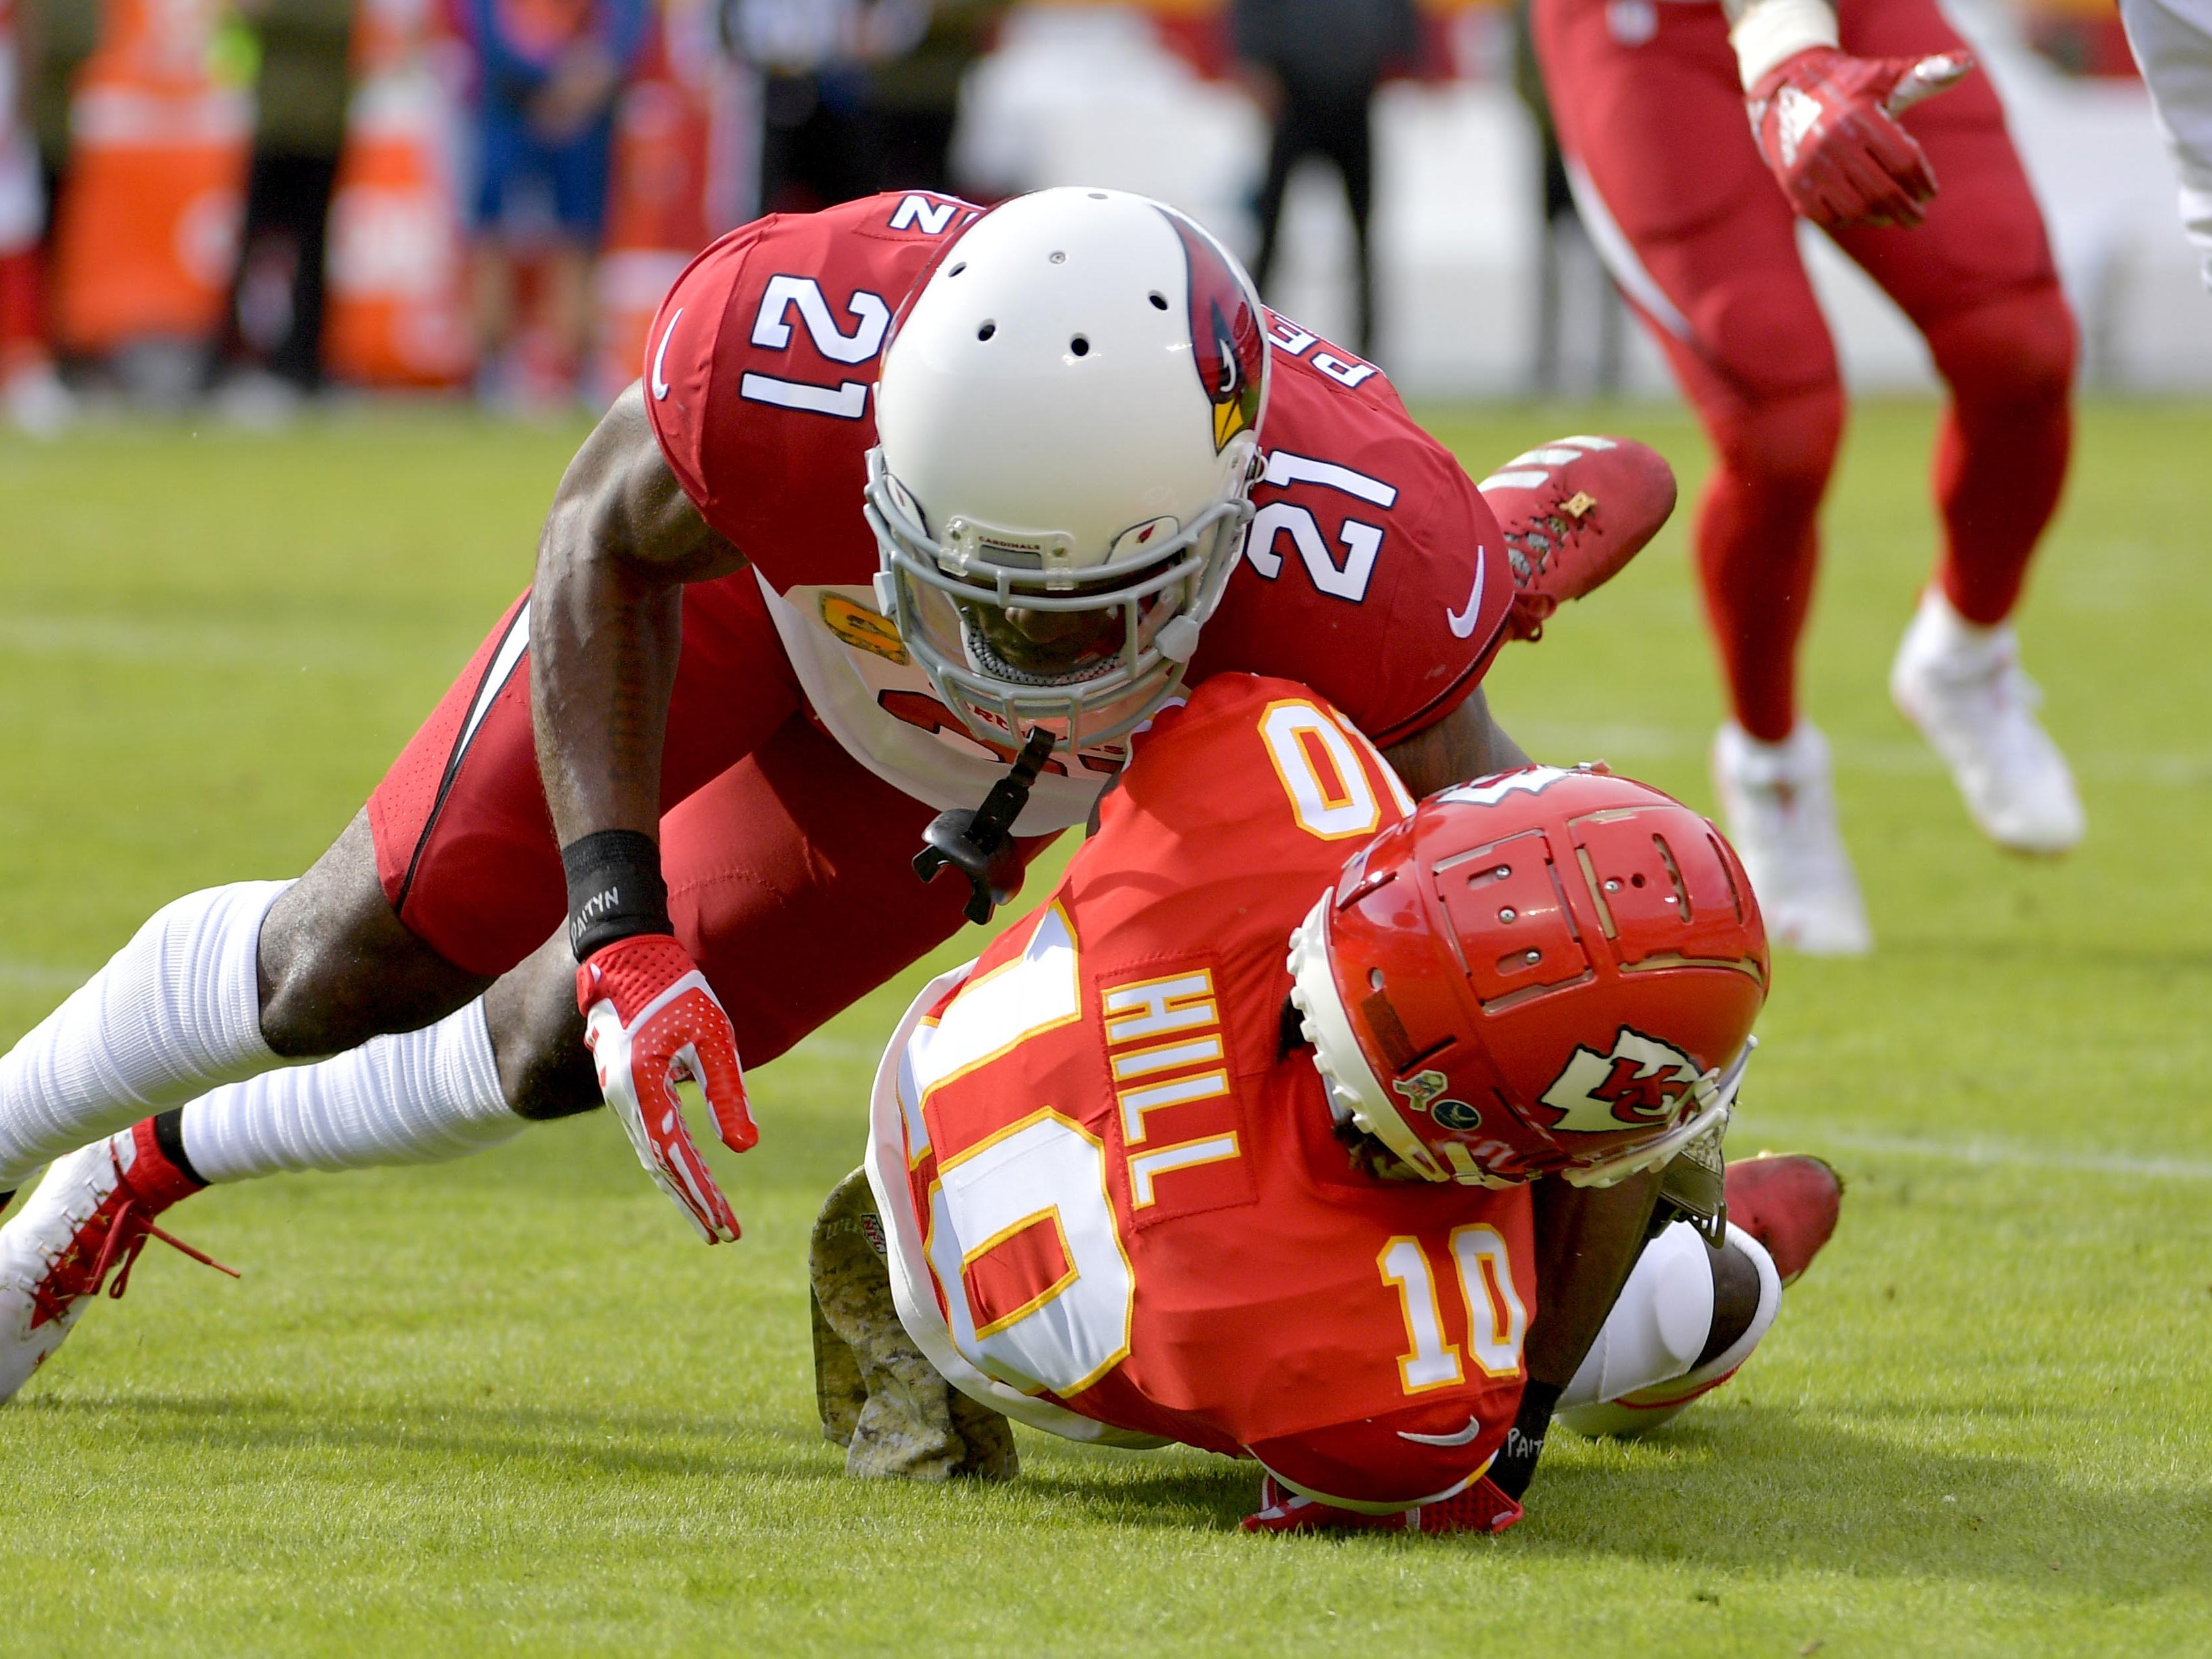 Nov 11, 2018; Kansas City, MO, USA; Kansas City Chiefs wide receiver Tyreek Hill (10) is tackled by Arizona Cardinals cornerback Patrick Peterson (21) during the first half at Arrowhead Stadium. Mandatory Credit: Denny Medley-USA TODAY Sports